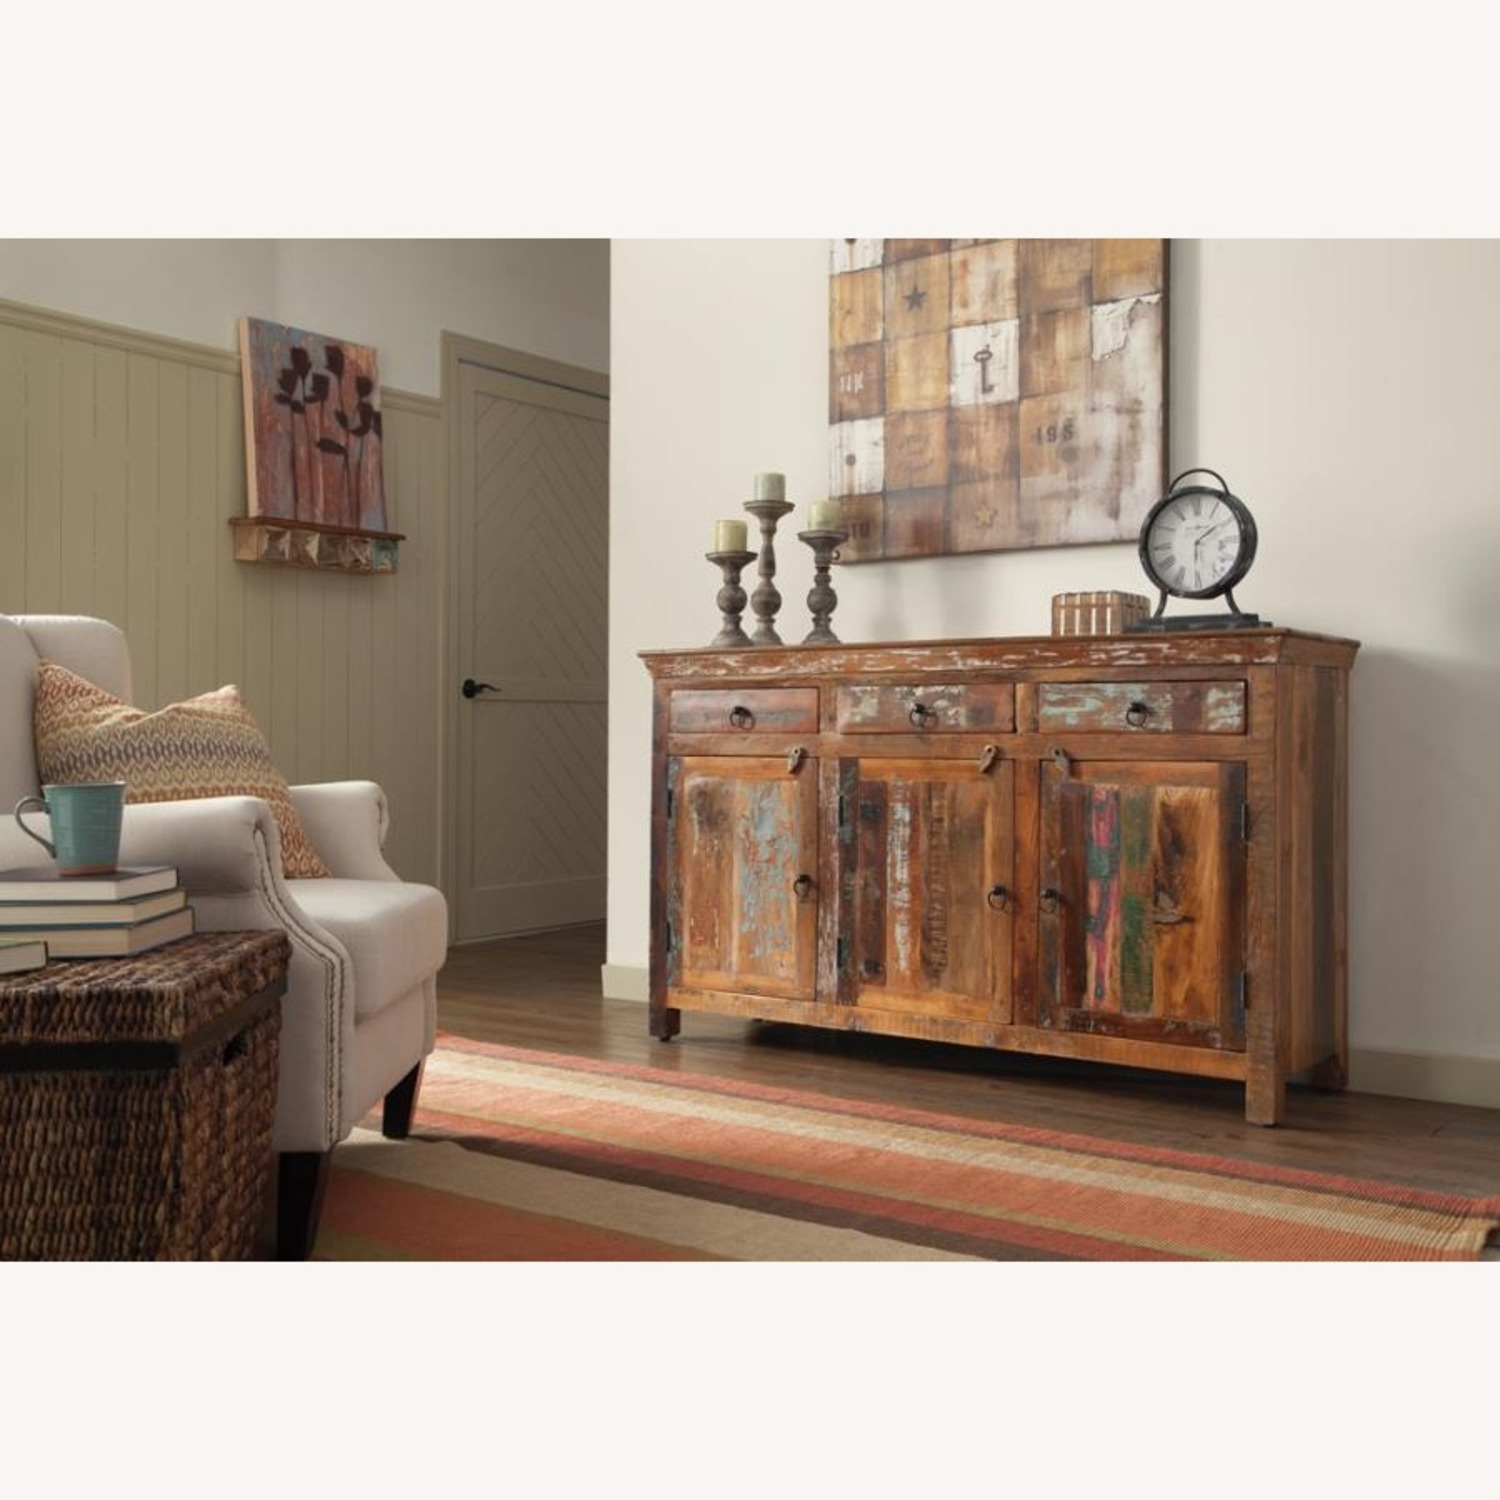 Accent Cabinet In Reclaimed Wood Finish - image-2